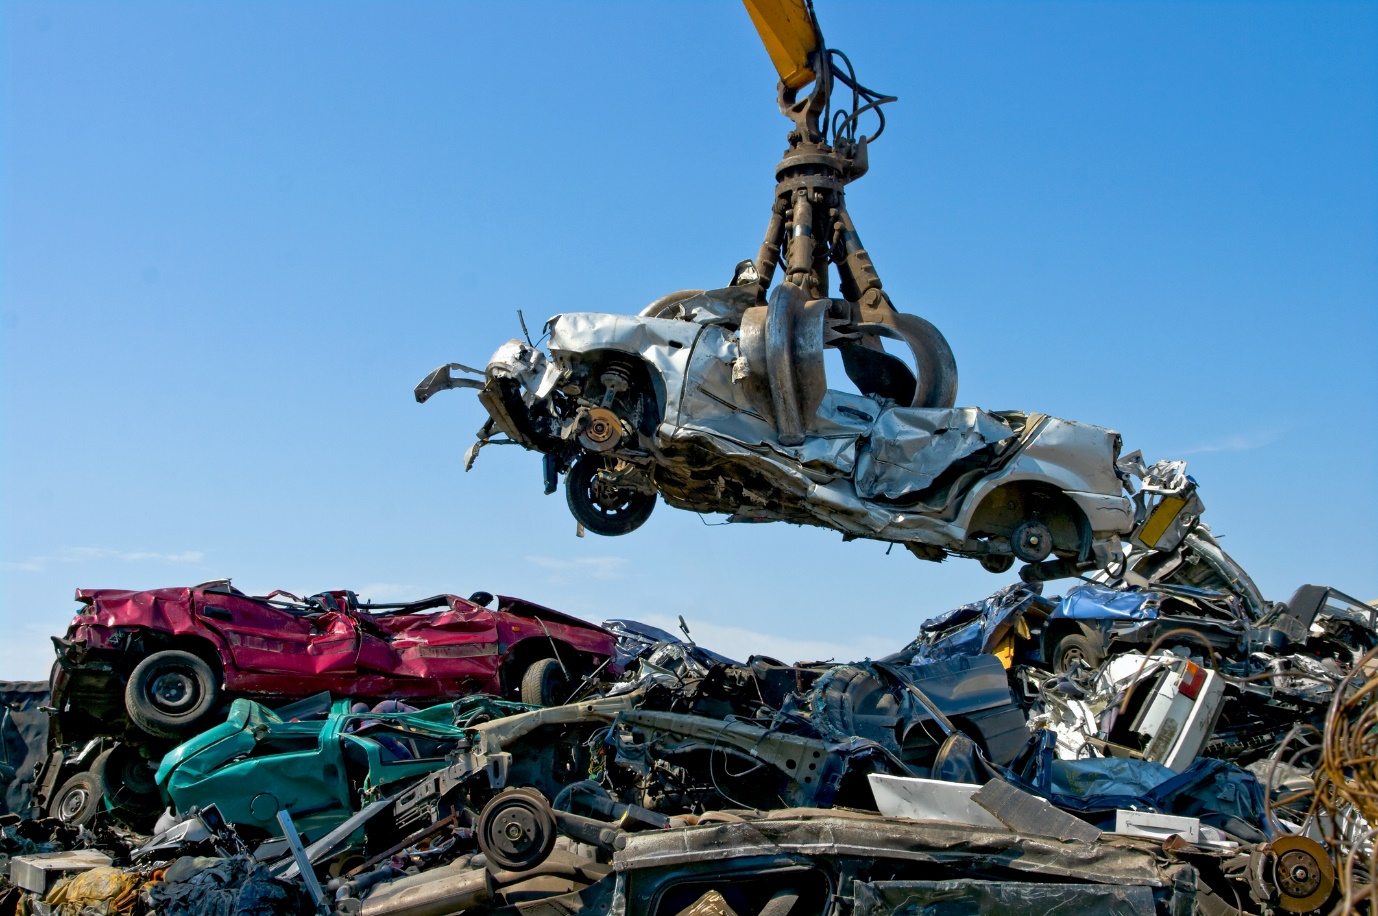 The Impact of COVID-19 on Scrap Metal Recycling